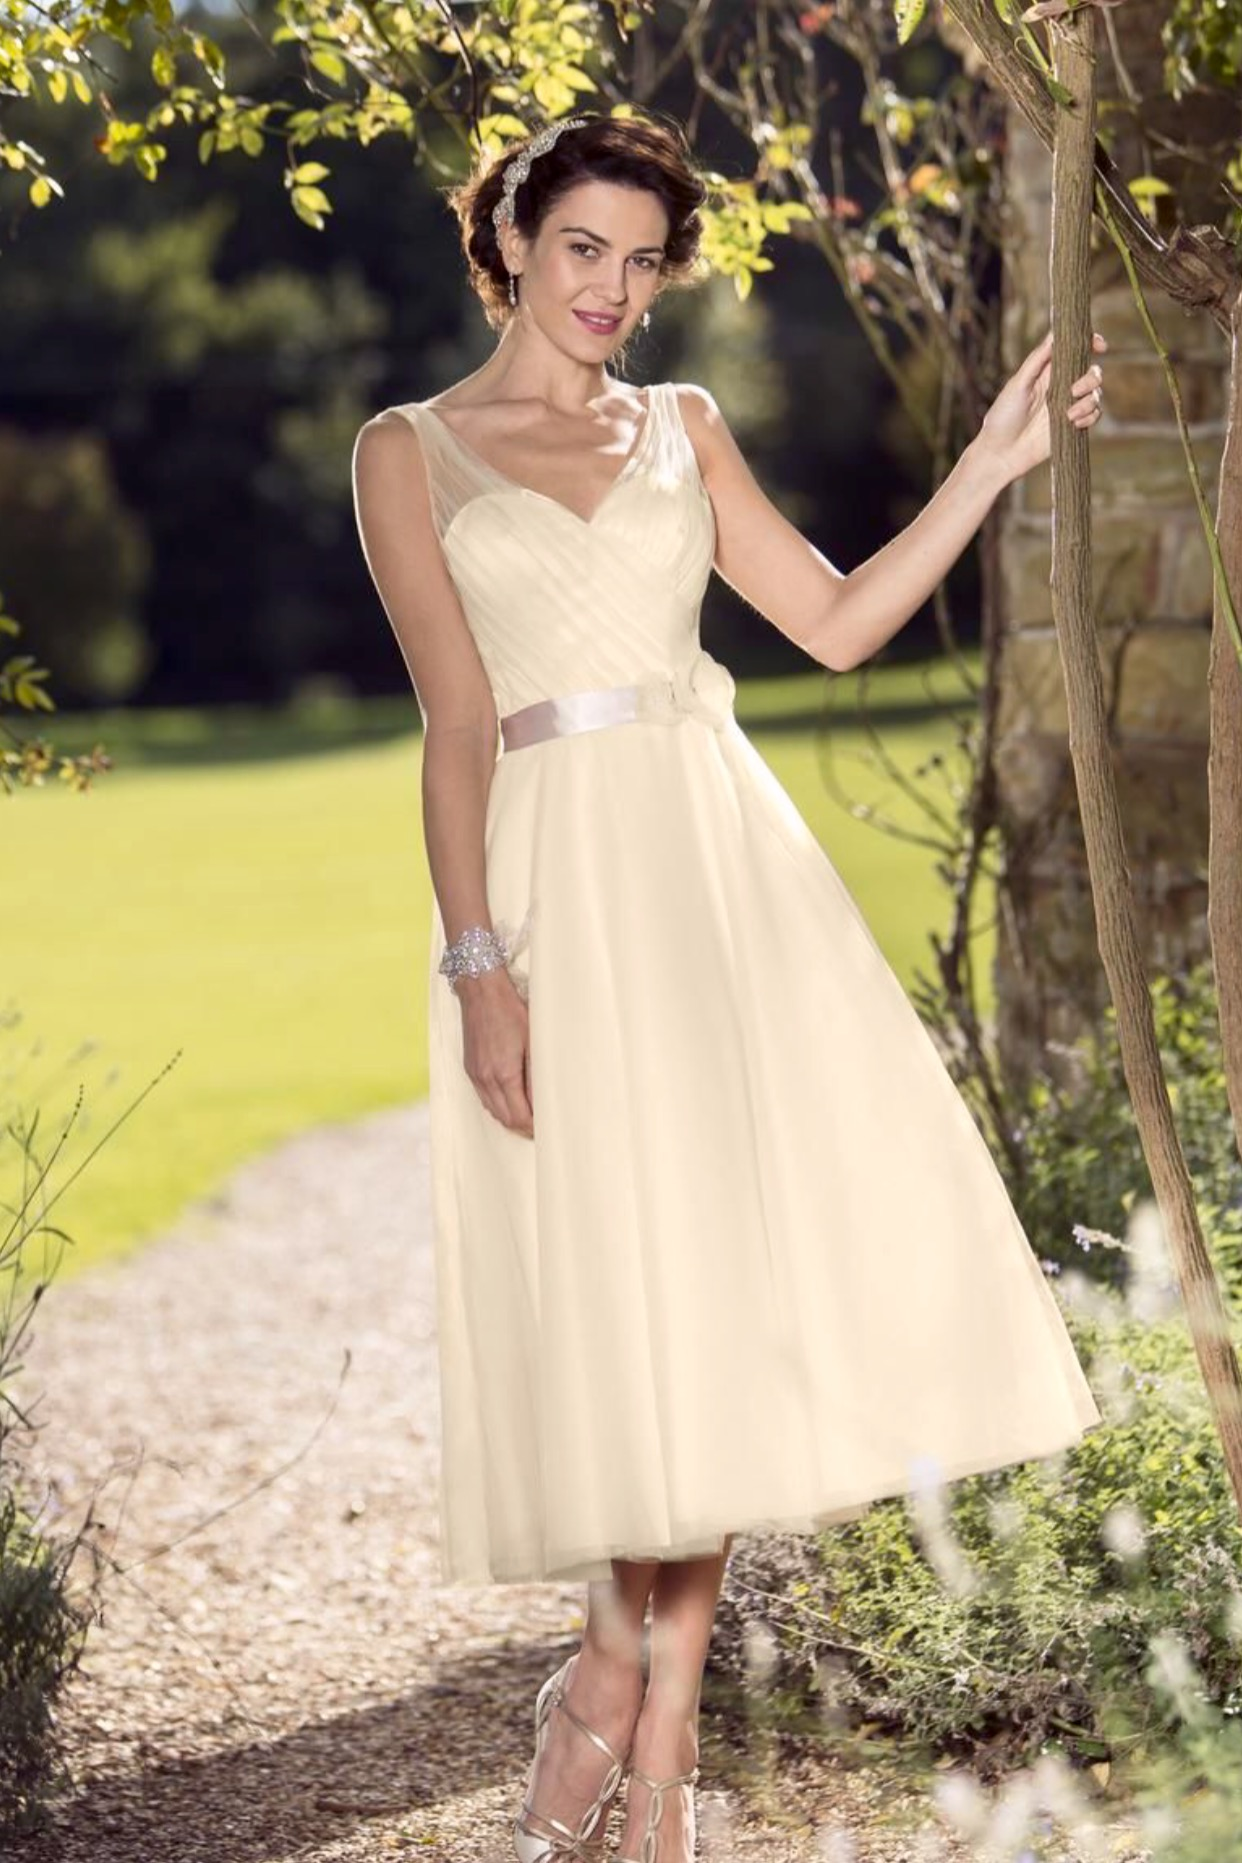 096a163b29c4 Perfect for brides who are on a strict budget or haven't got time to wait  to order a new dress.